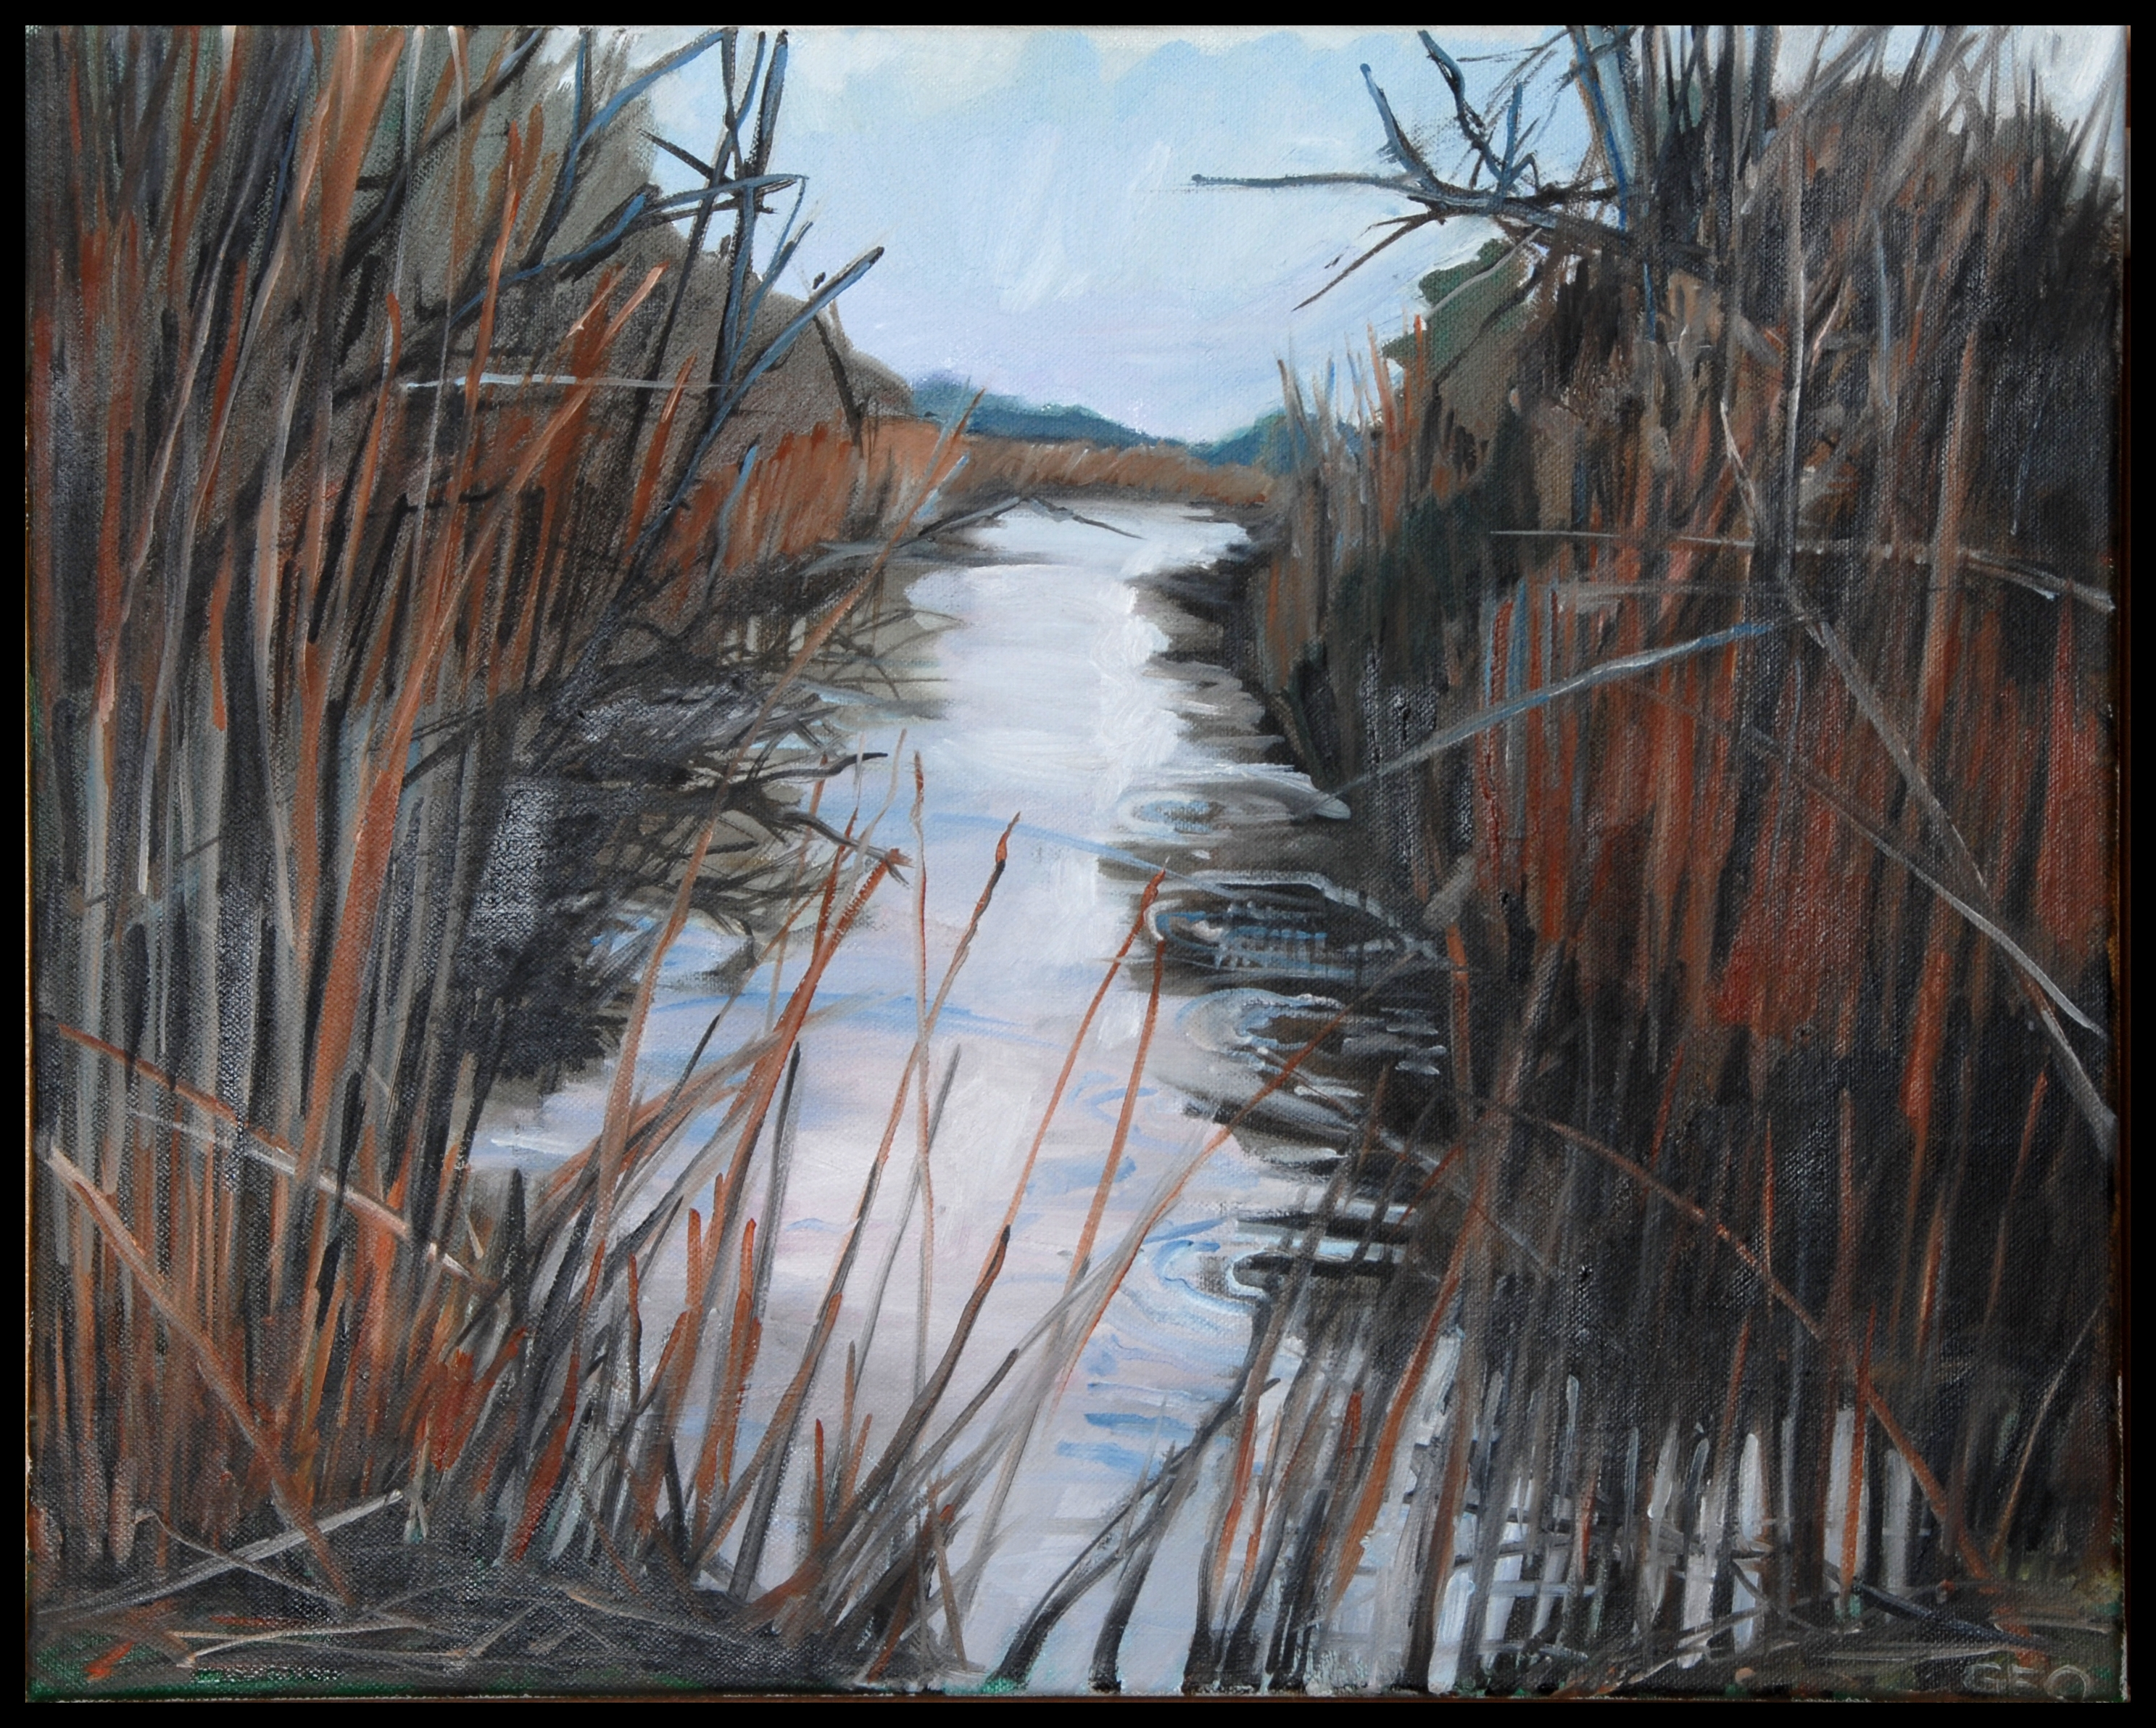 Blackwater Winter 16x20 oil on canvas